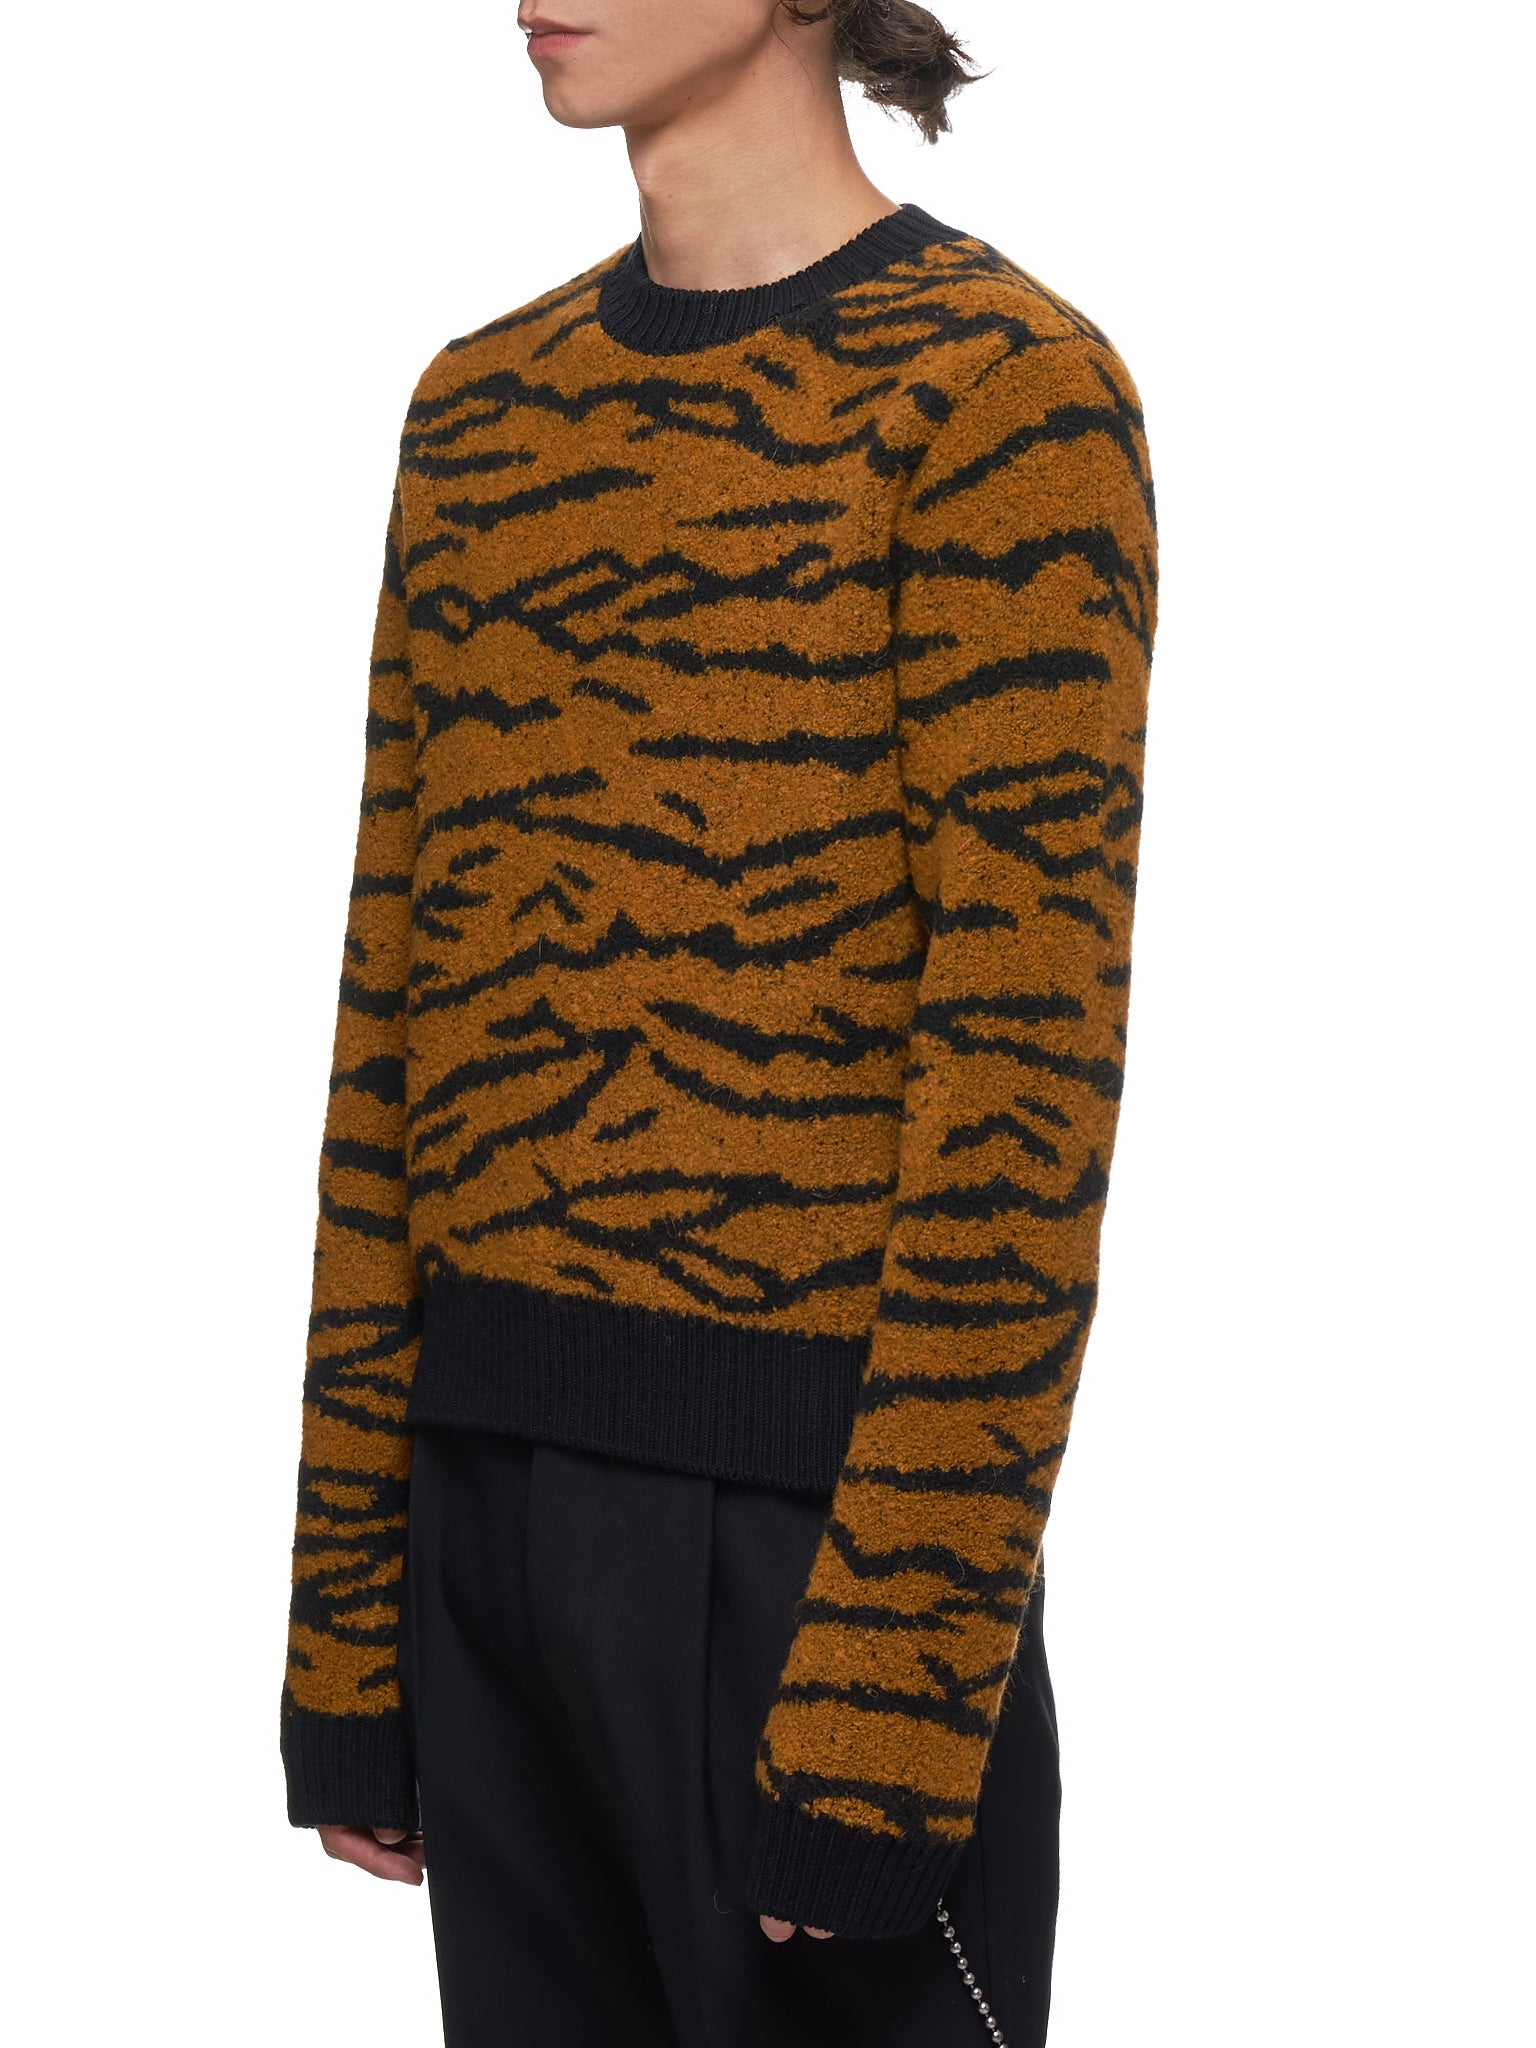 John Lawrence Sullivan Sweater - Hlorenzo Side